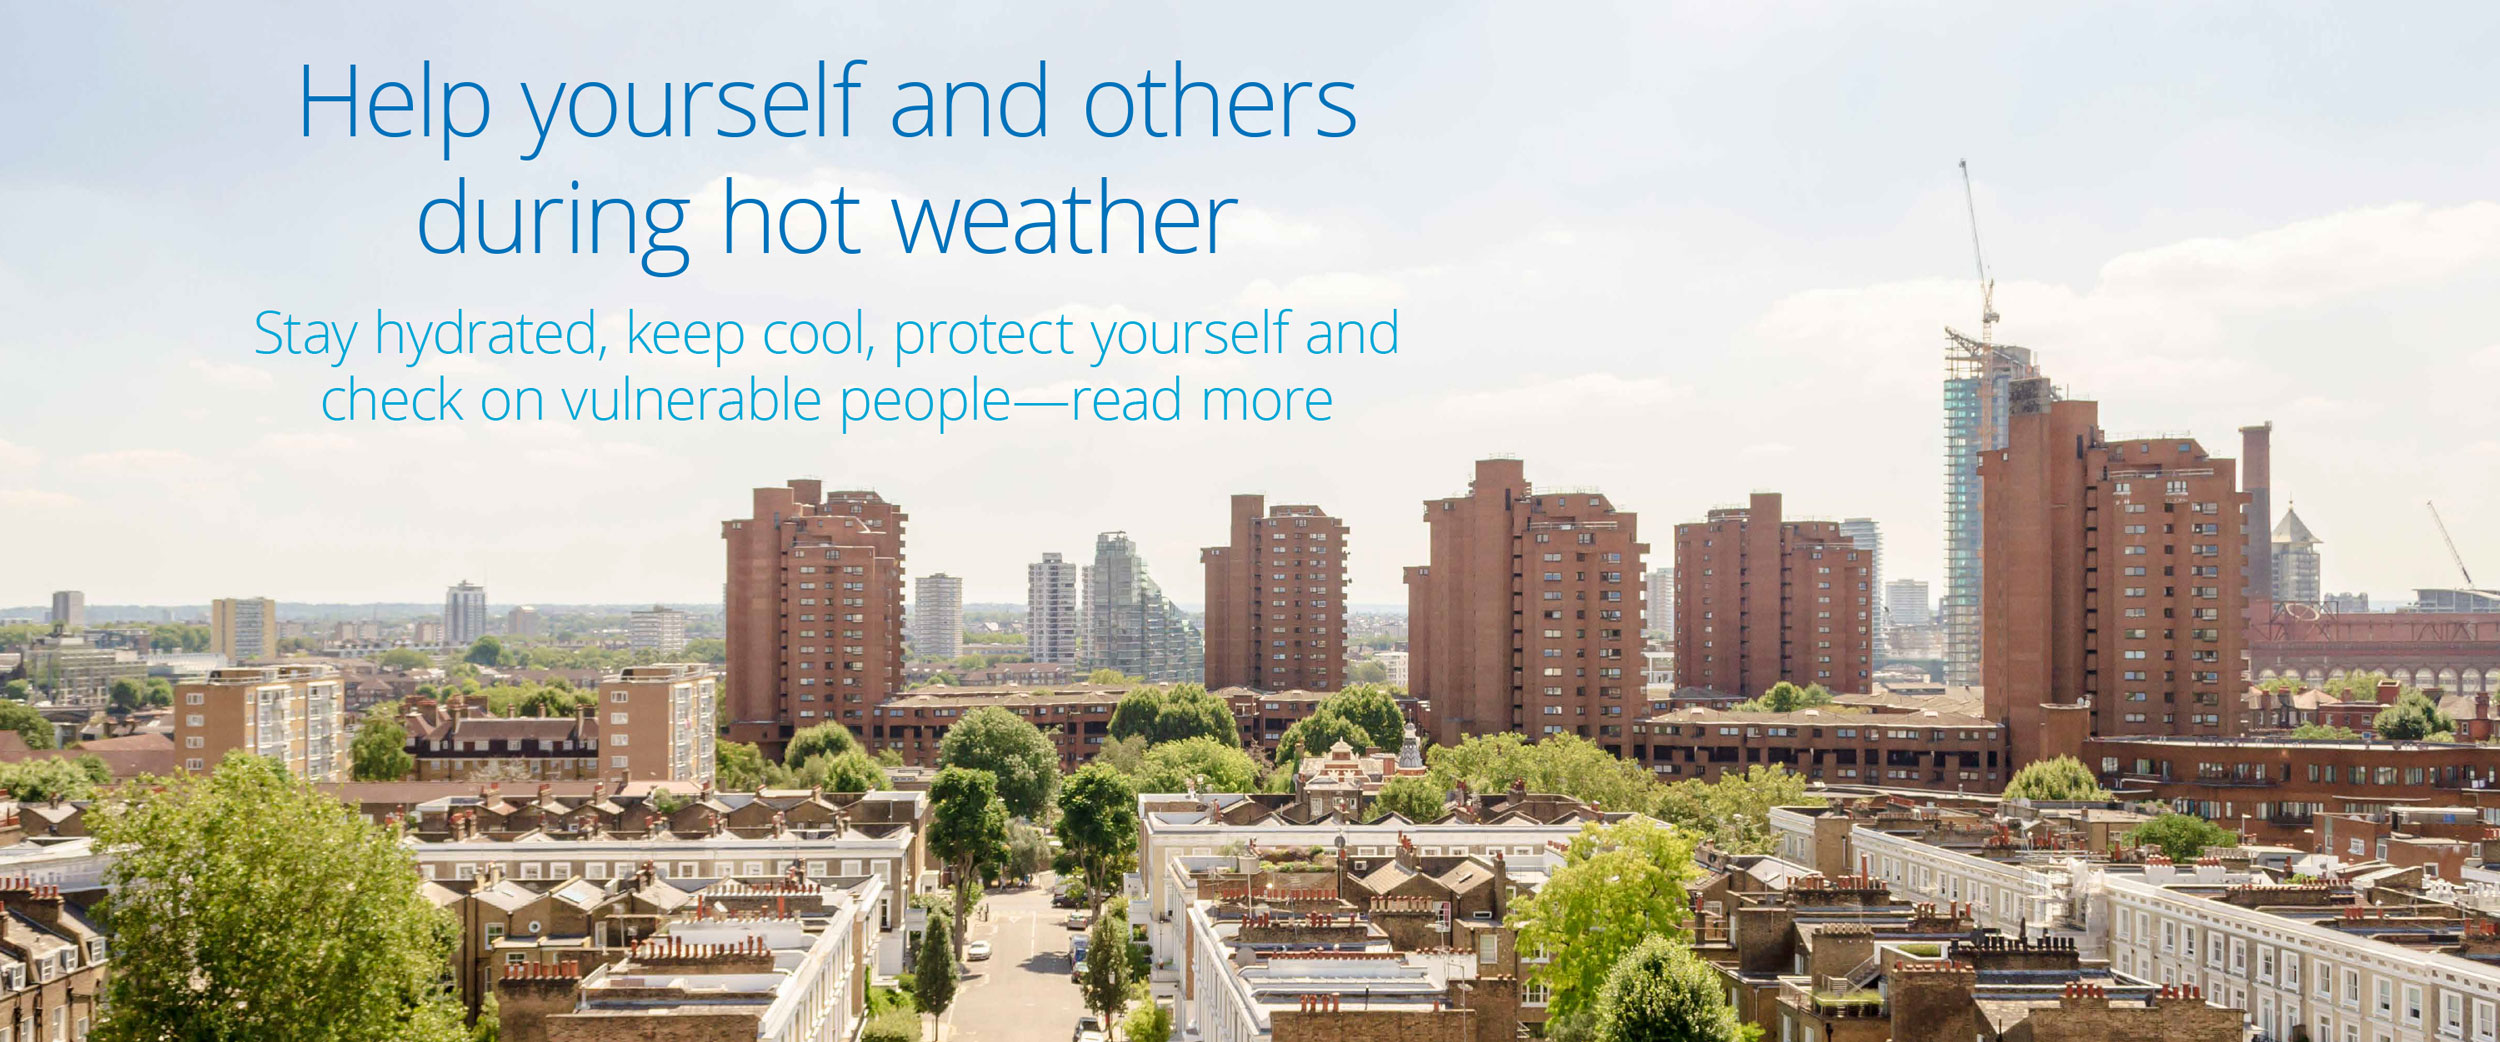 Looking after yourself and others during hot weather